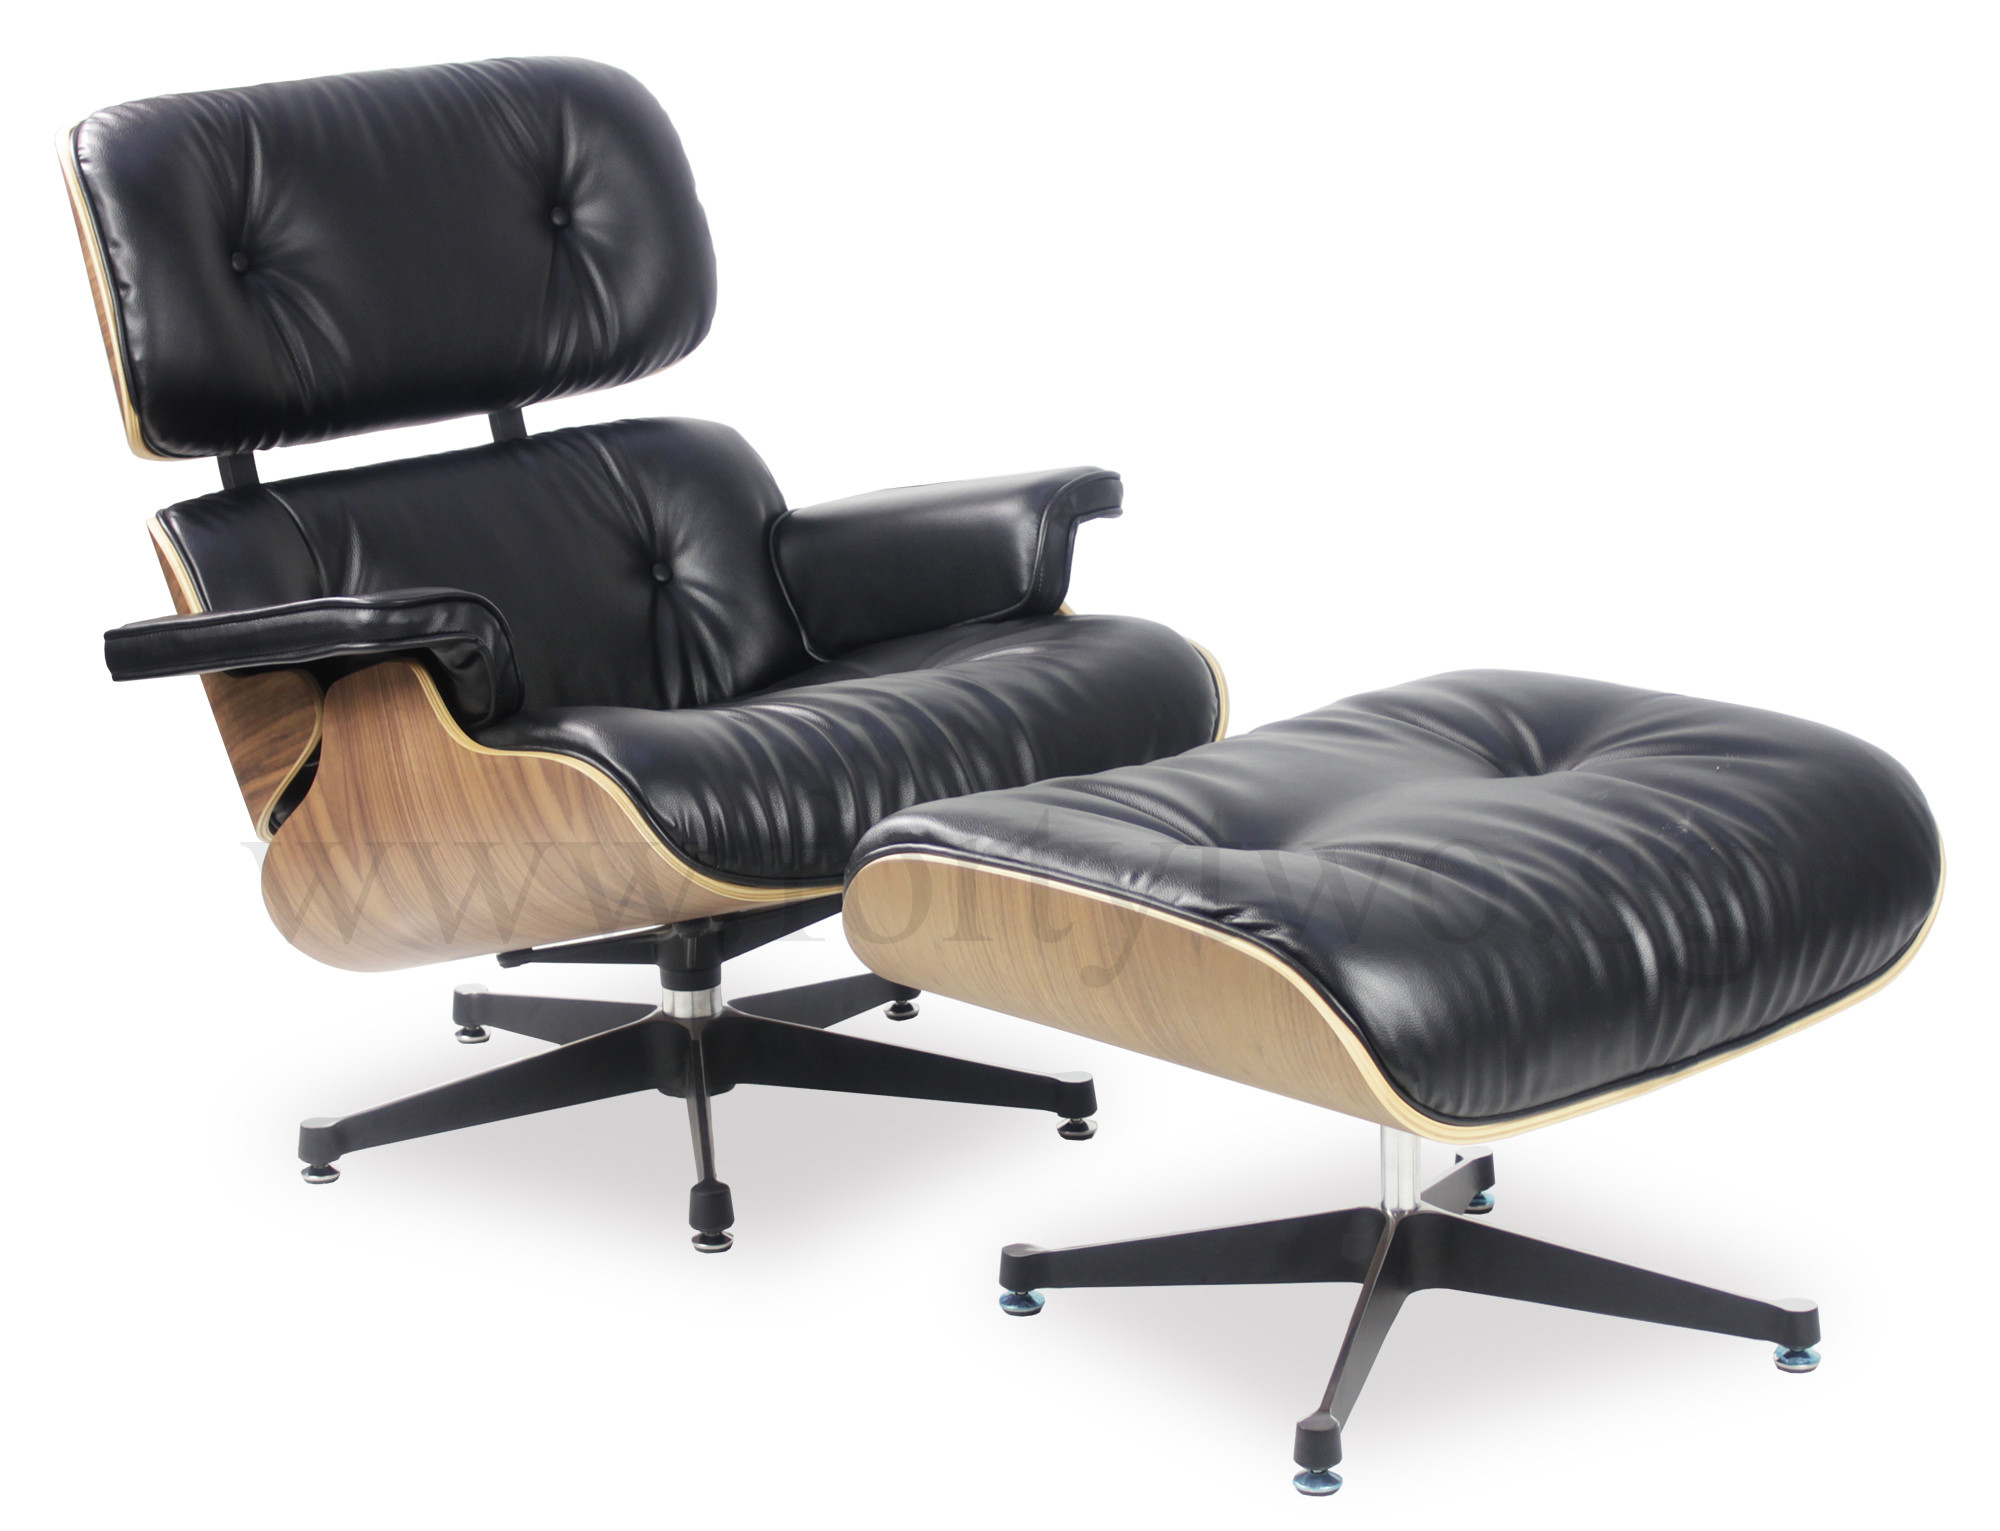 Designer replica eames lounge chair black furniture for Eames replica